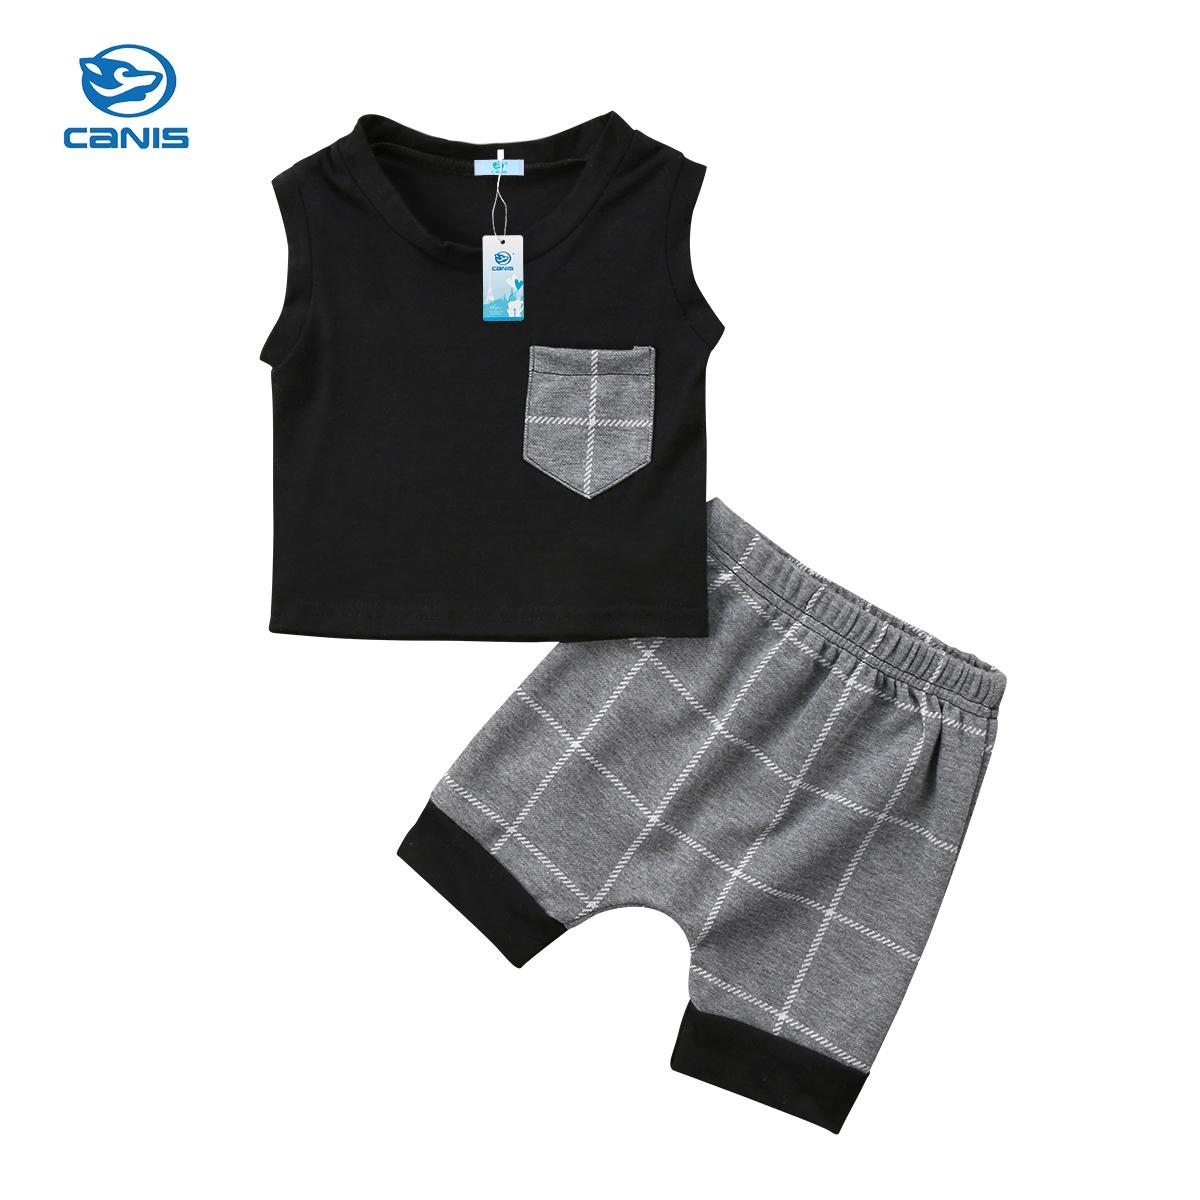 973e884adcf 2019 New Fashion Cute Toddler Kids Baby Boy Outfits Clothes T Shirt Tops+Pants  Trousers Set 0 24M From Cornemiu